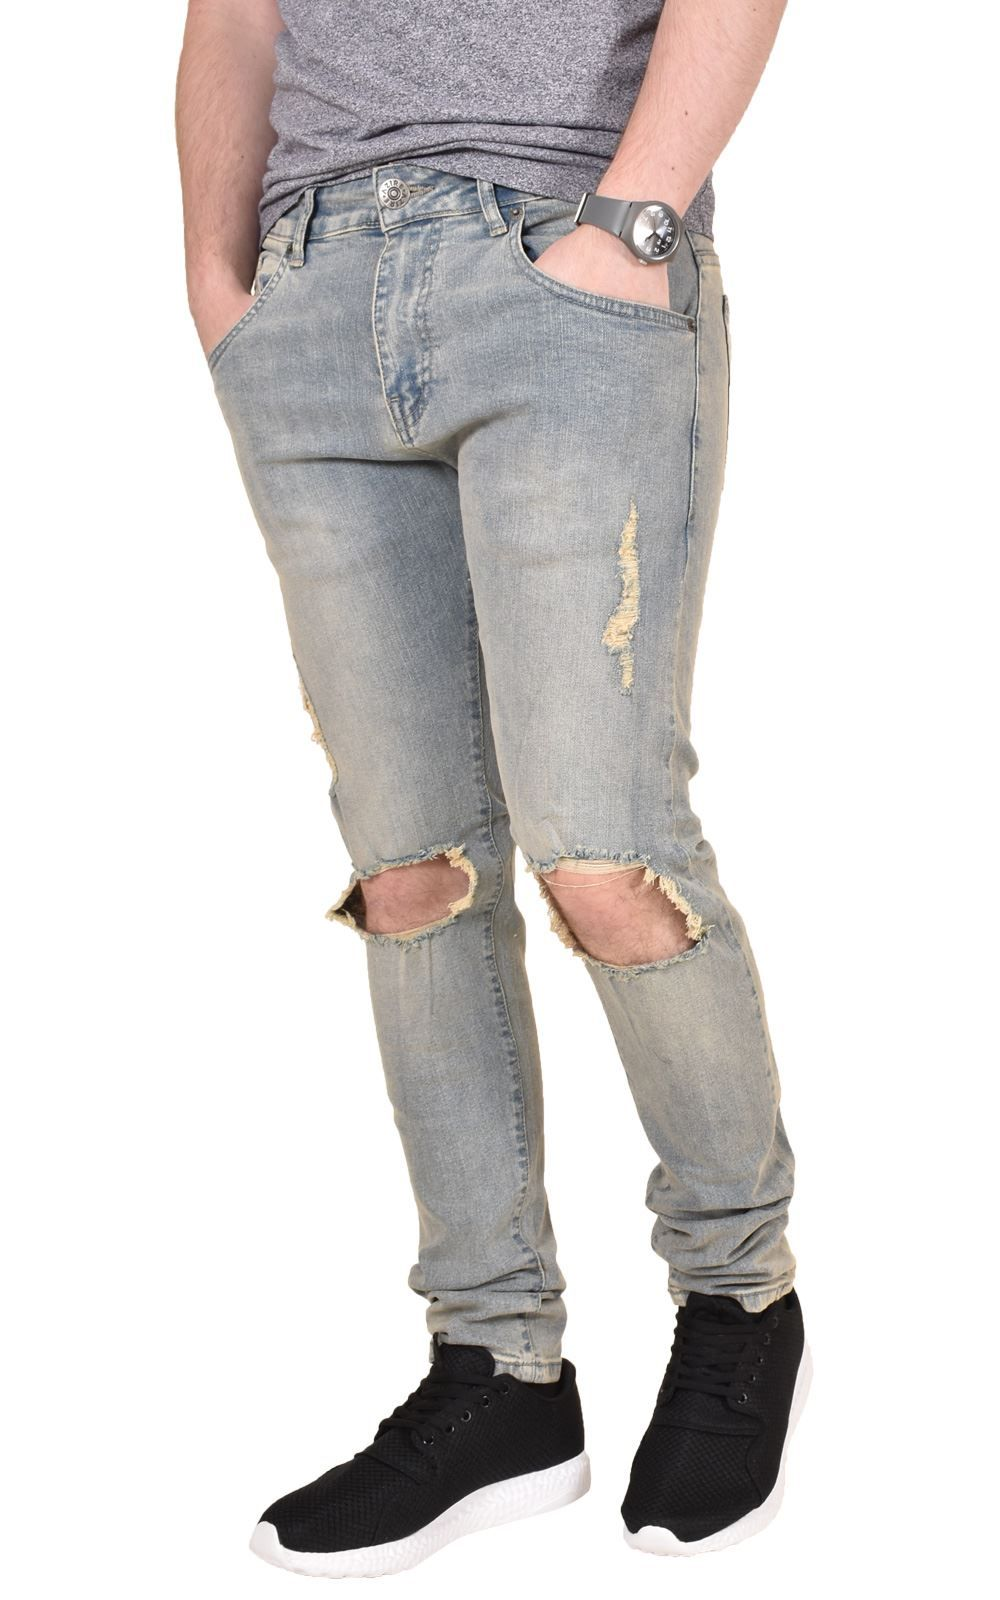 c9b7323d96 men ripped jeans Mens-Jeans-Knee-Ripped-Azire-Stretchable-Skinny-Fit-Branded-Denim-Logo-Casual  men ripped jeans ...